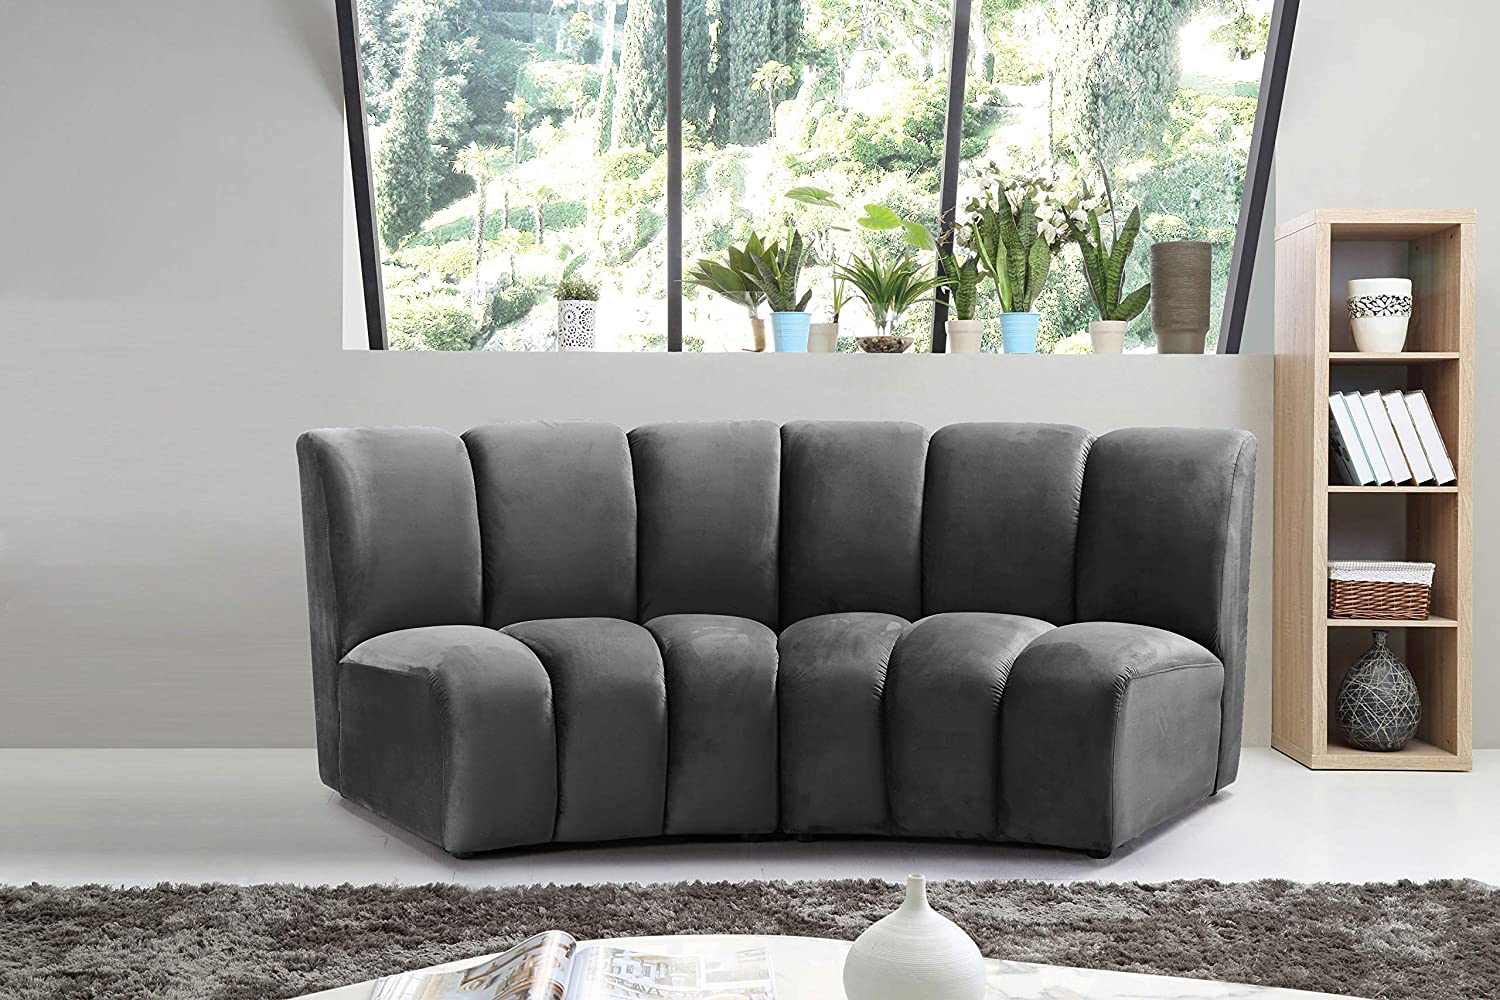 small-curved-sofa-with-channel-tufting-unique-modern-low-profile-furniture-for-sale-online-modular-sectional-component